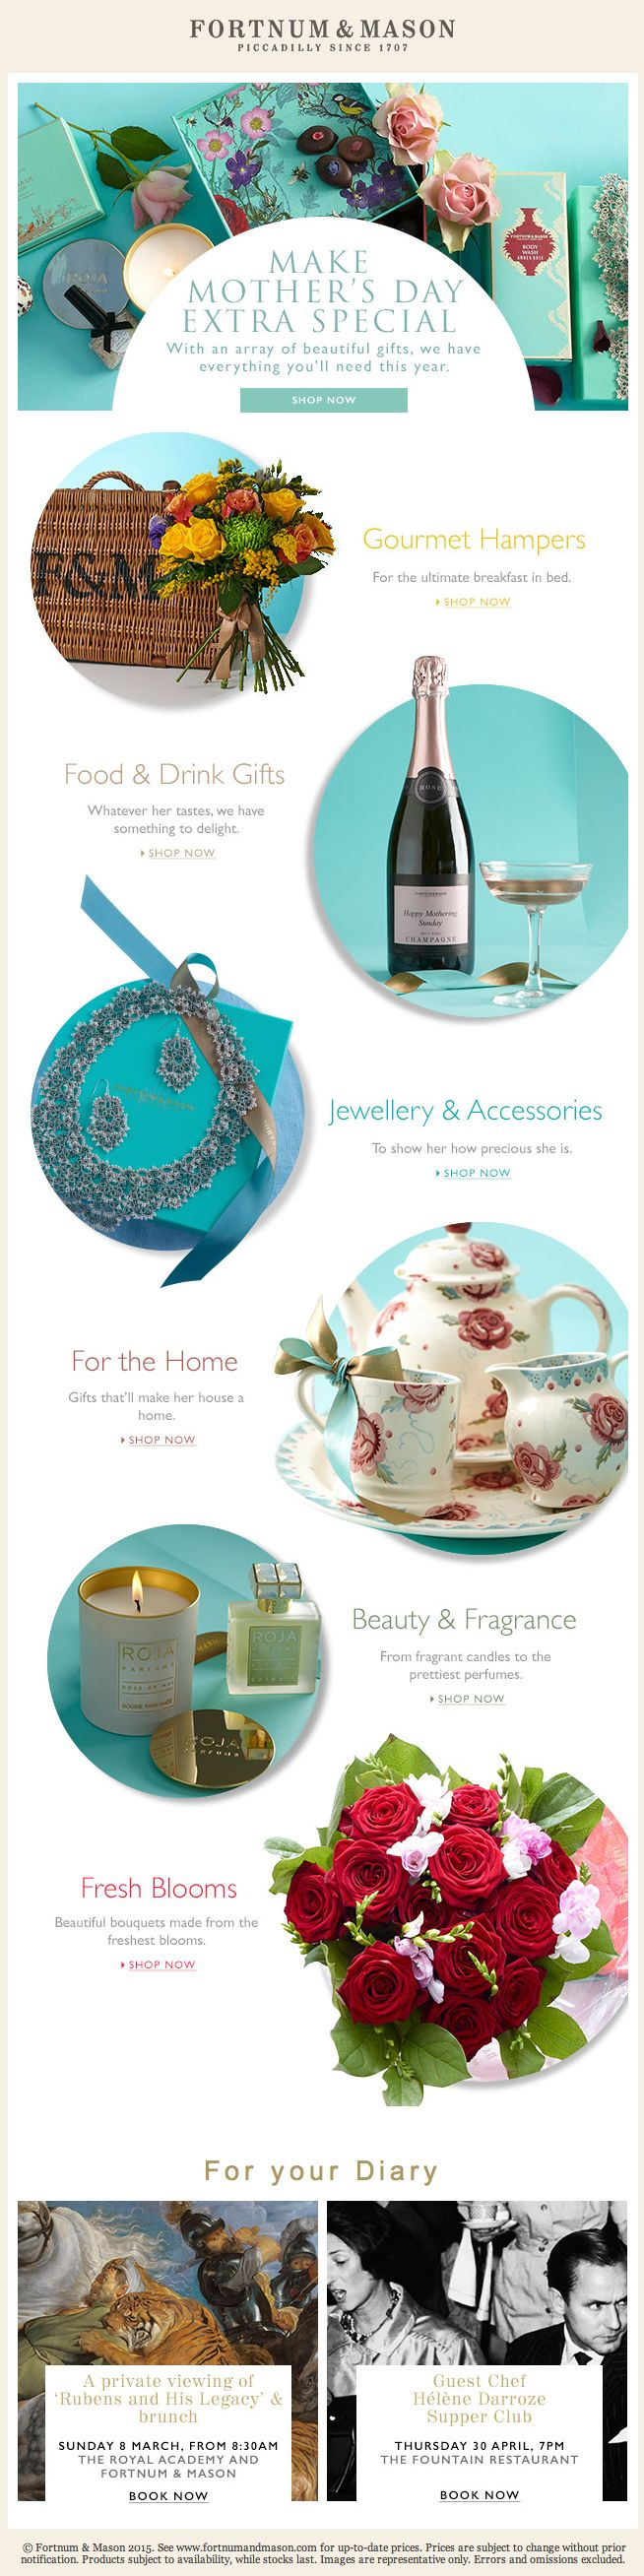 Show Your Devotion | Make Mother's Day Extra Special | Fortnum & Mason | 26 Feb 2015